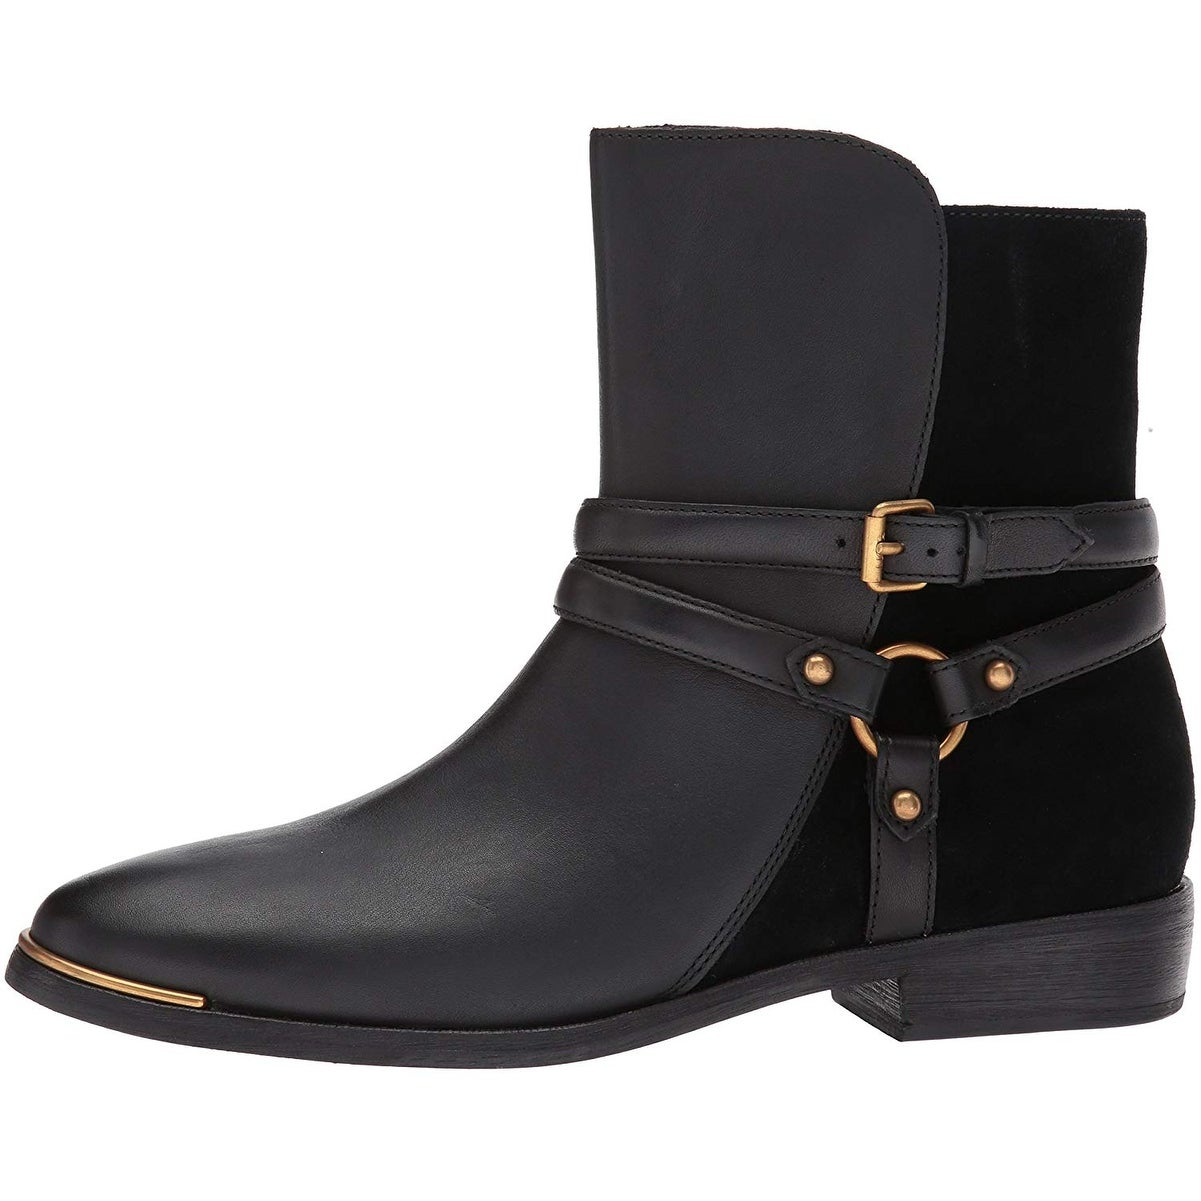 a1eb131eaef0 Shop UGG Women s Kelby Boot - 6 - Free Shipping Today - Overstock - 25634986